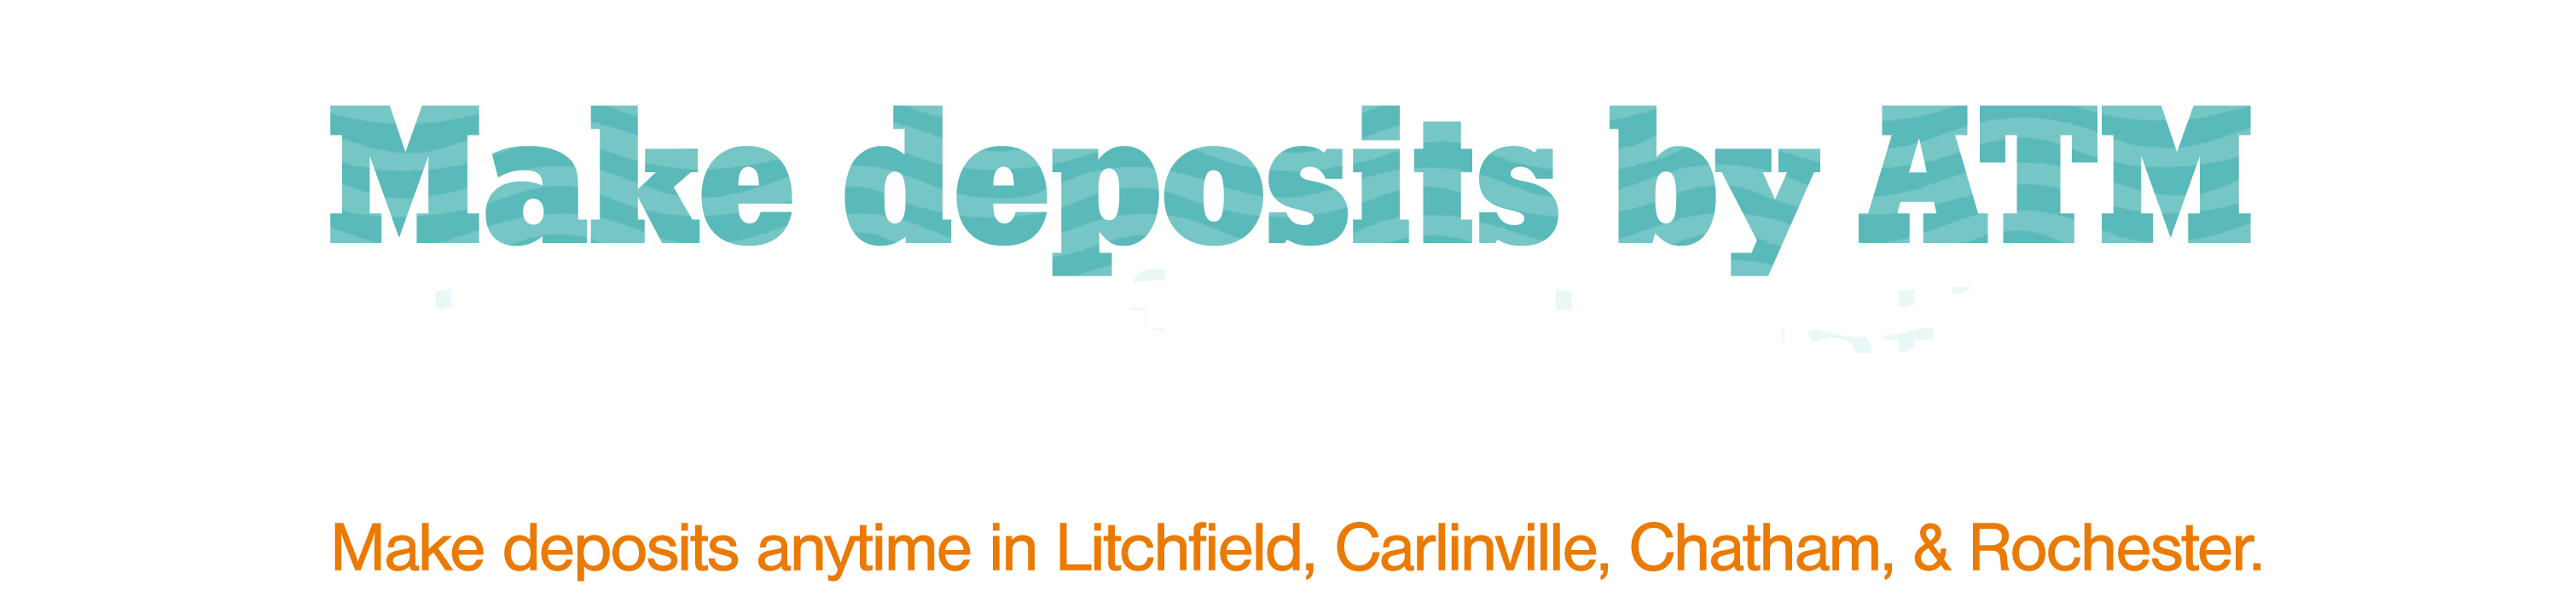 Make deposits via ATM in LItchfield, Carlinville, Chatham, and Rochester.